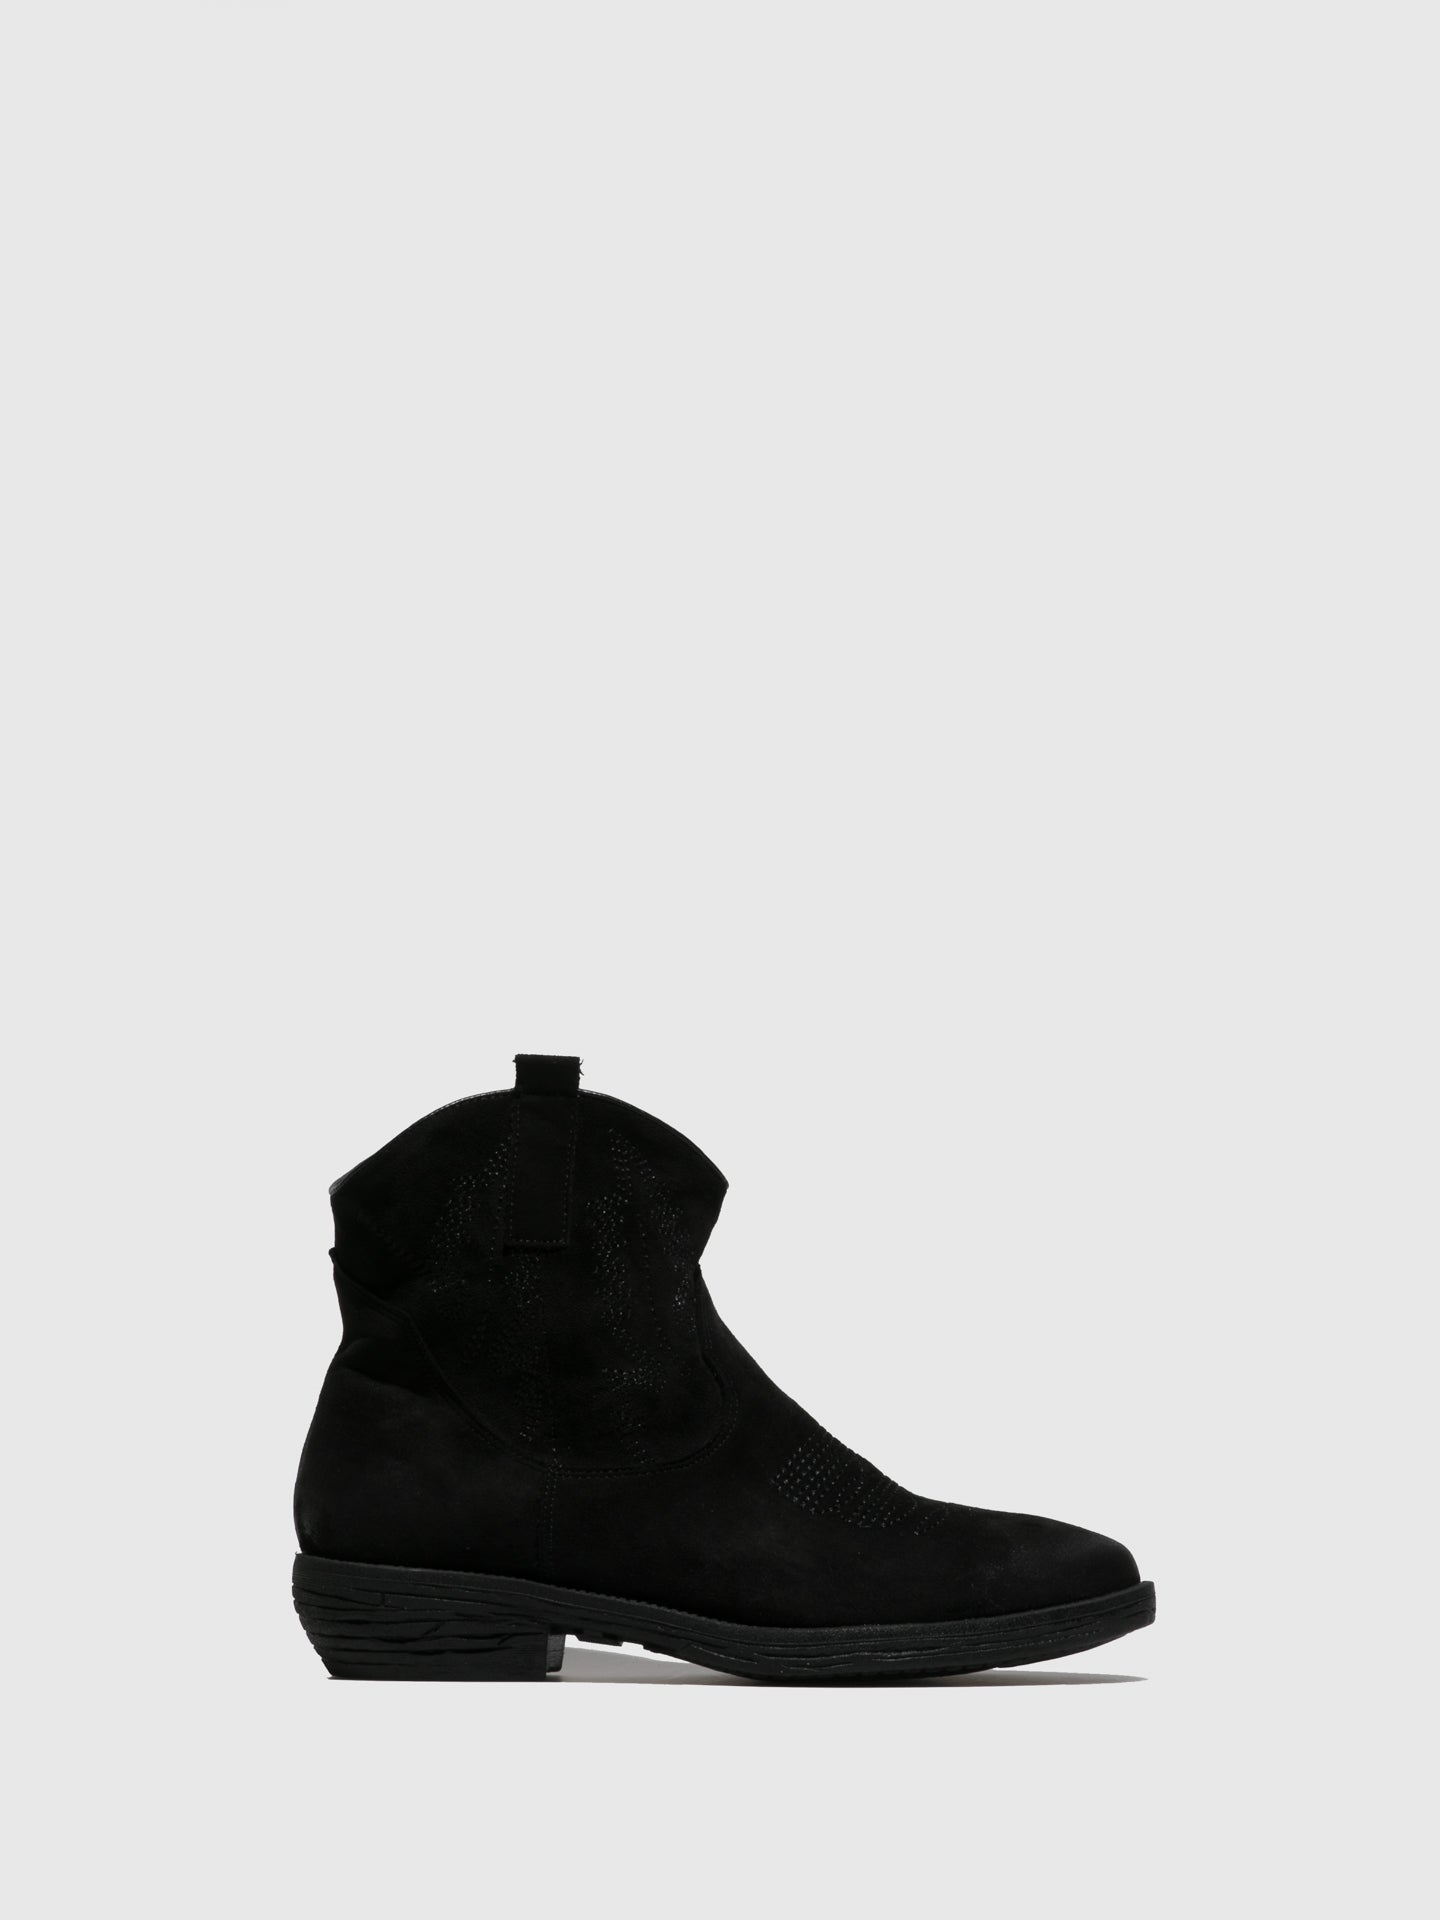 Francesco Milano Black Round Toe Ankle Boots